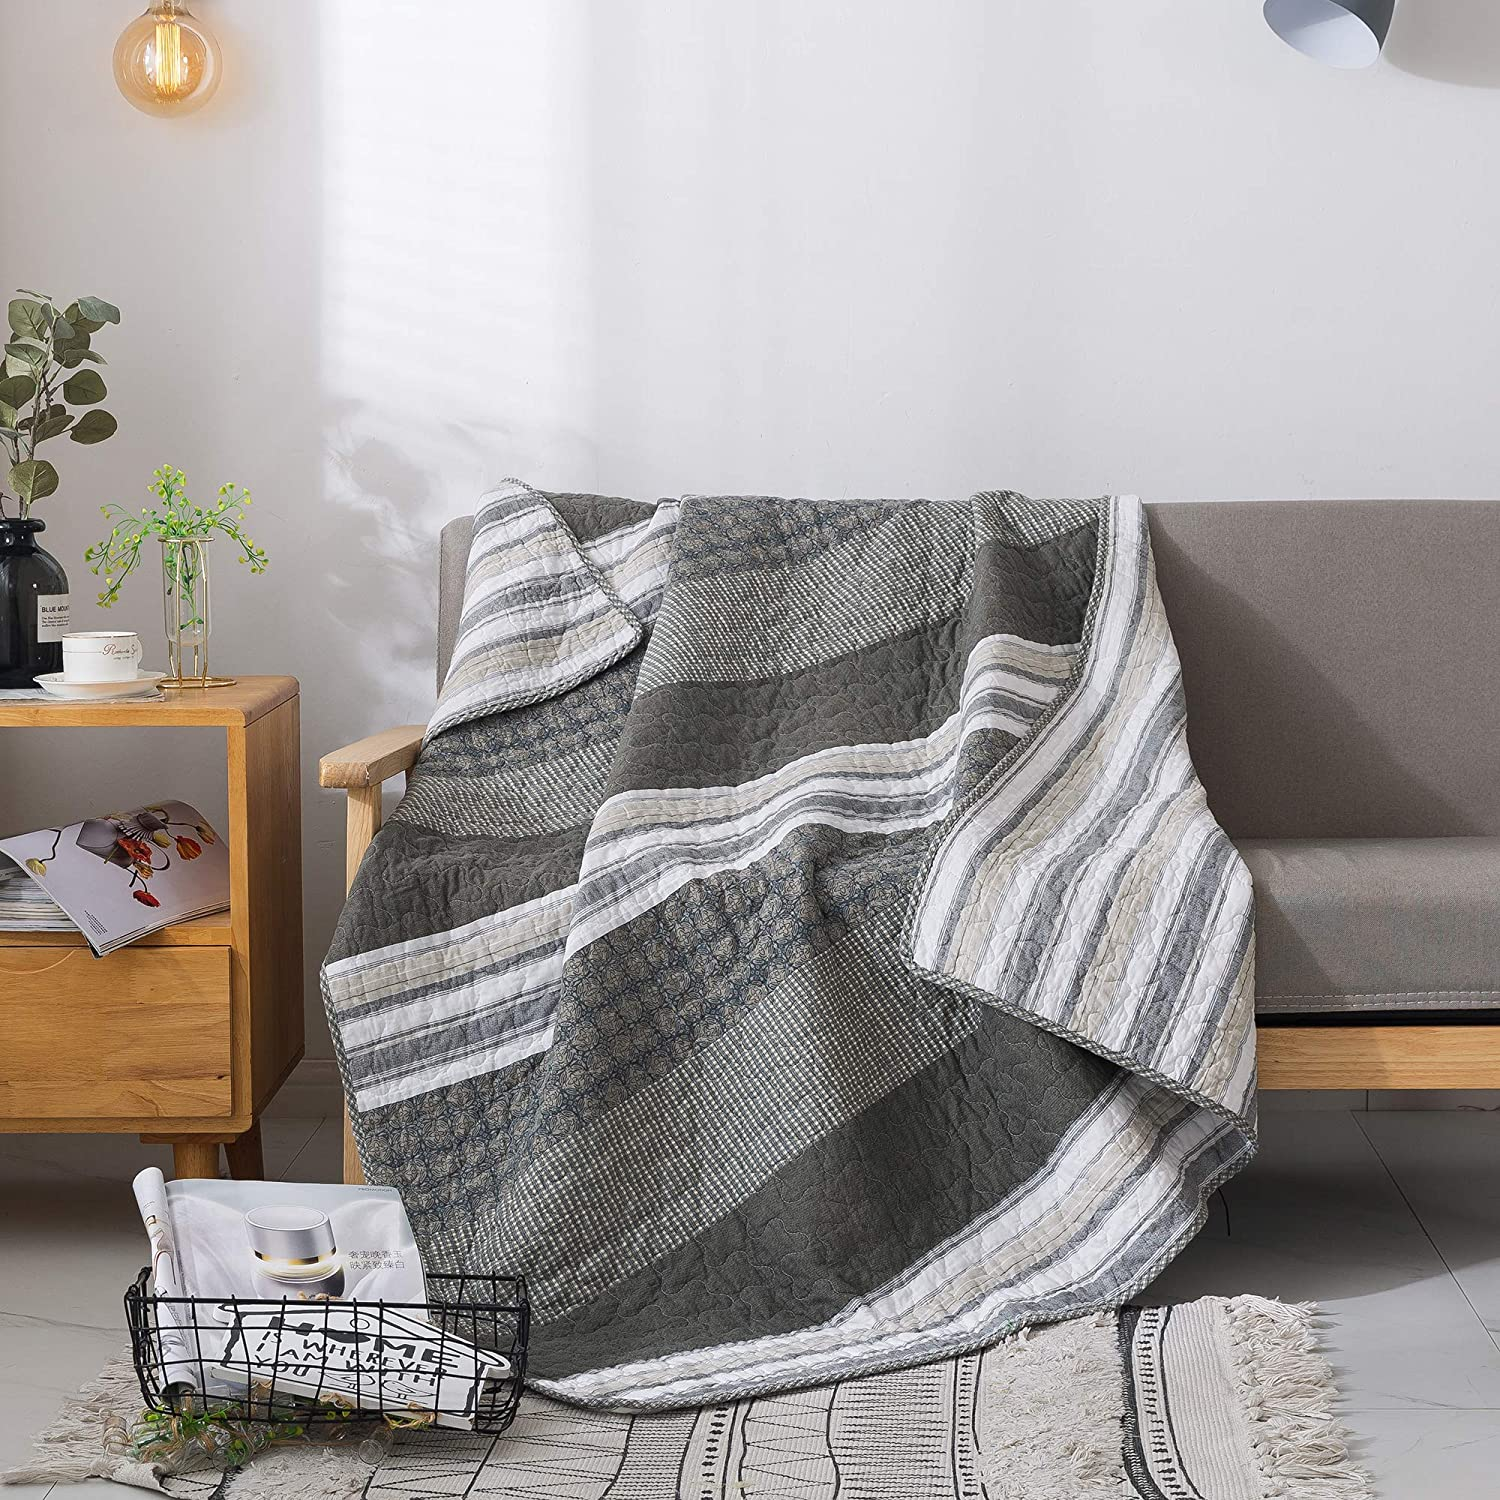 Soul & Lane Madrona Cotton Patchwork Bedding Quilted Throw - 50